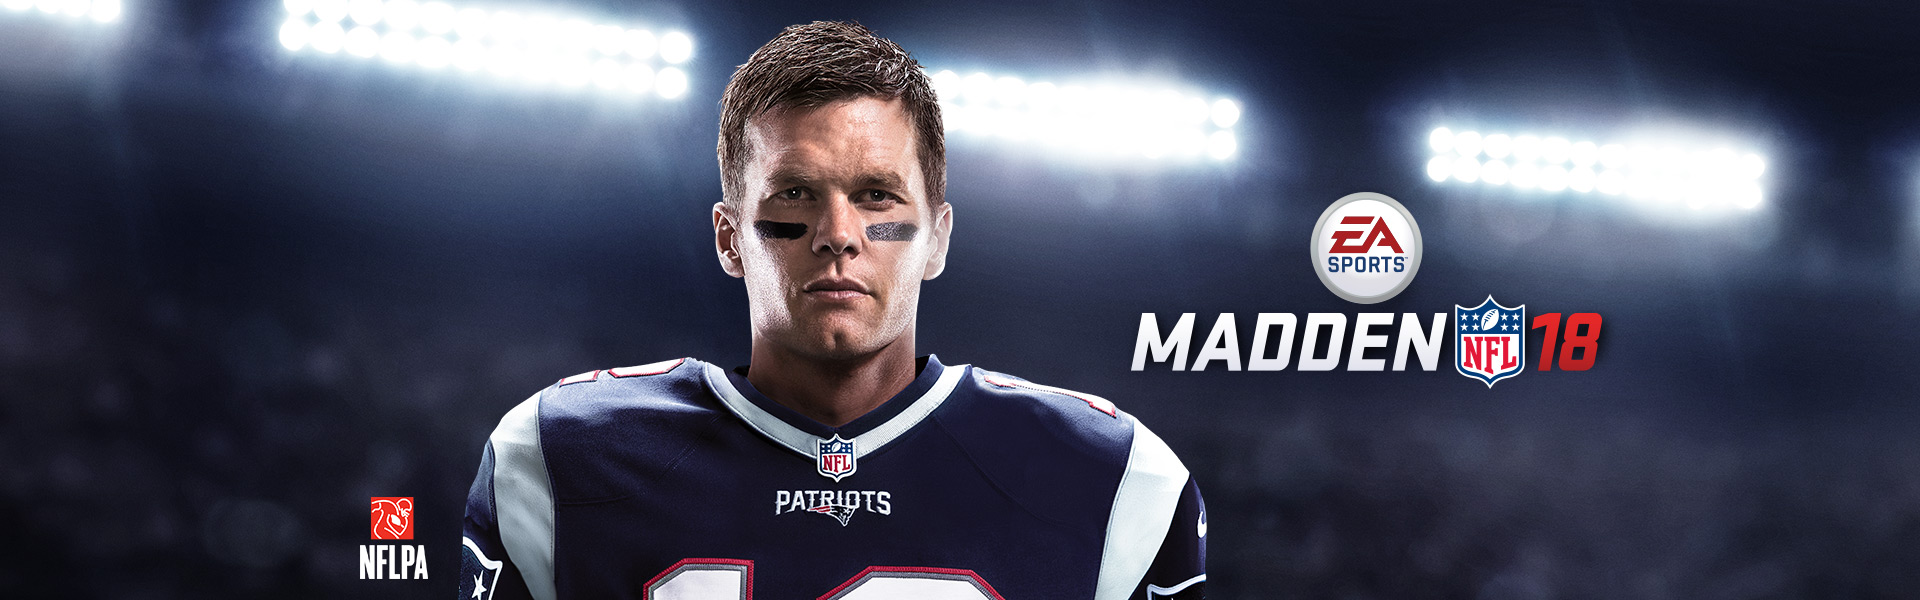 Tom Brady in Patriots uniform